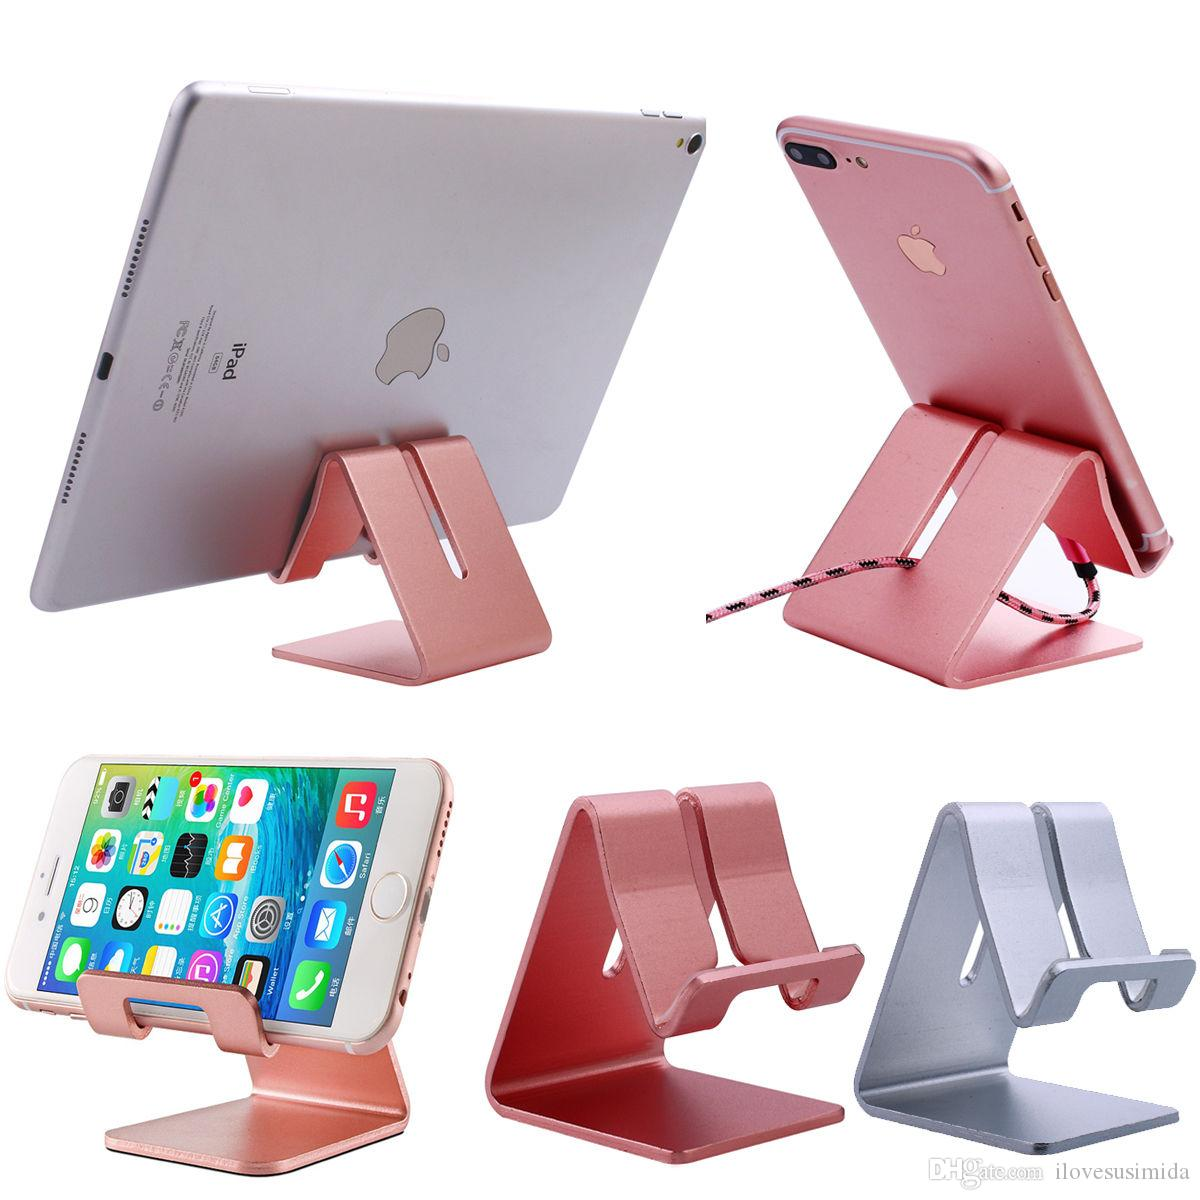 New creative products tablet holder metal Aluminum foldable mobile cell phone stand Portable Foldable Adjustable Aluminum Metal Cell Phone